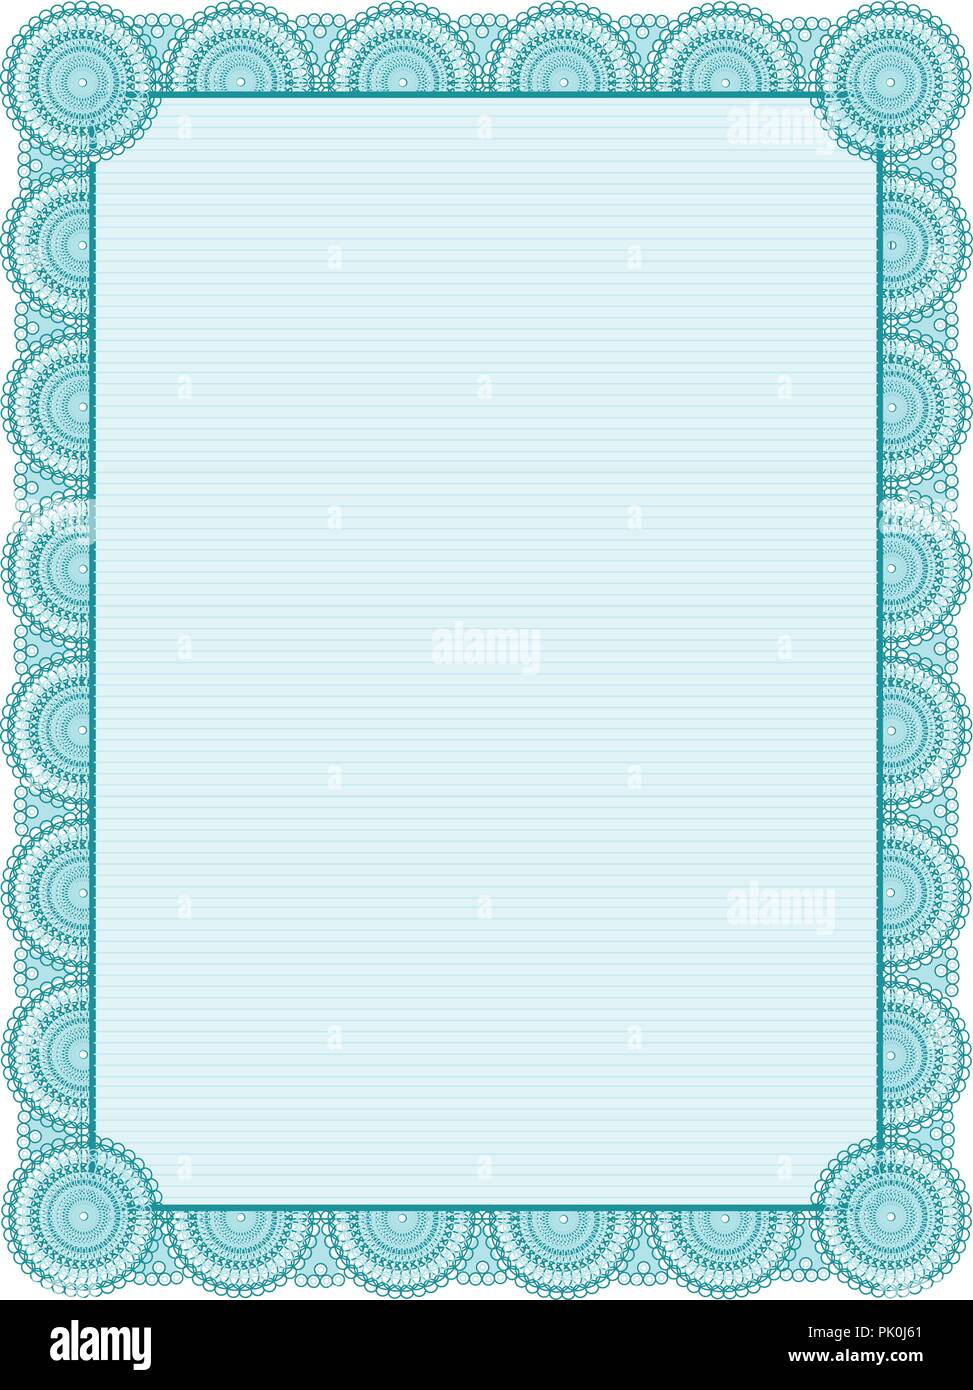 image about Printable Frame Template named Blank printable certification body / template Inventory Vector